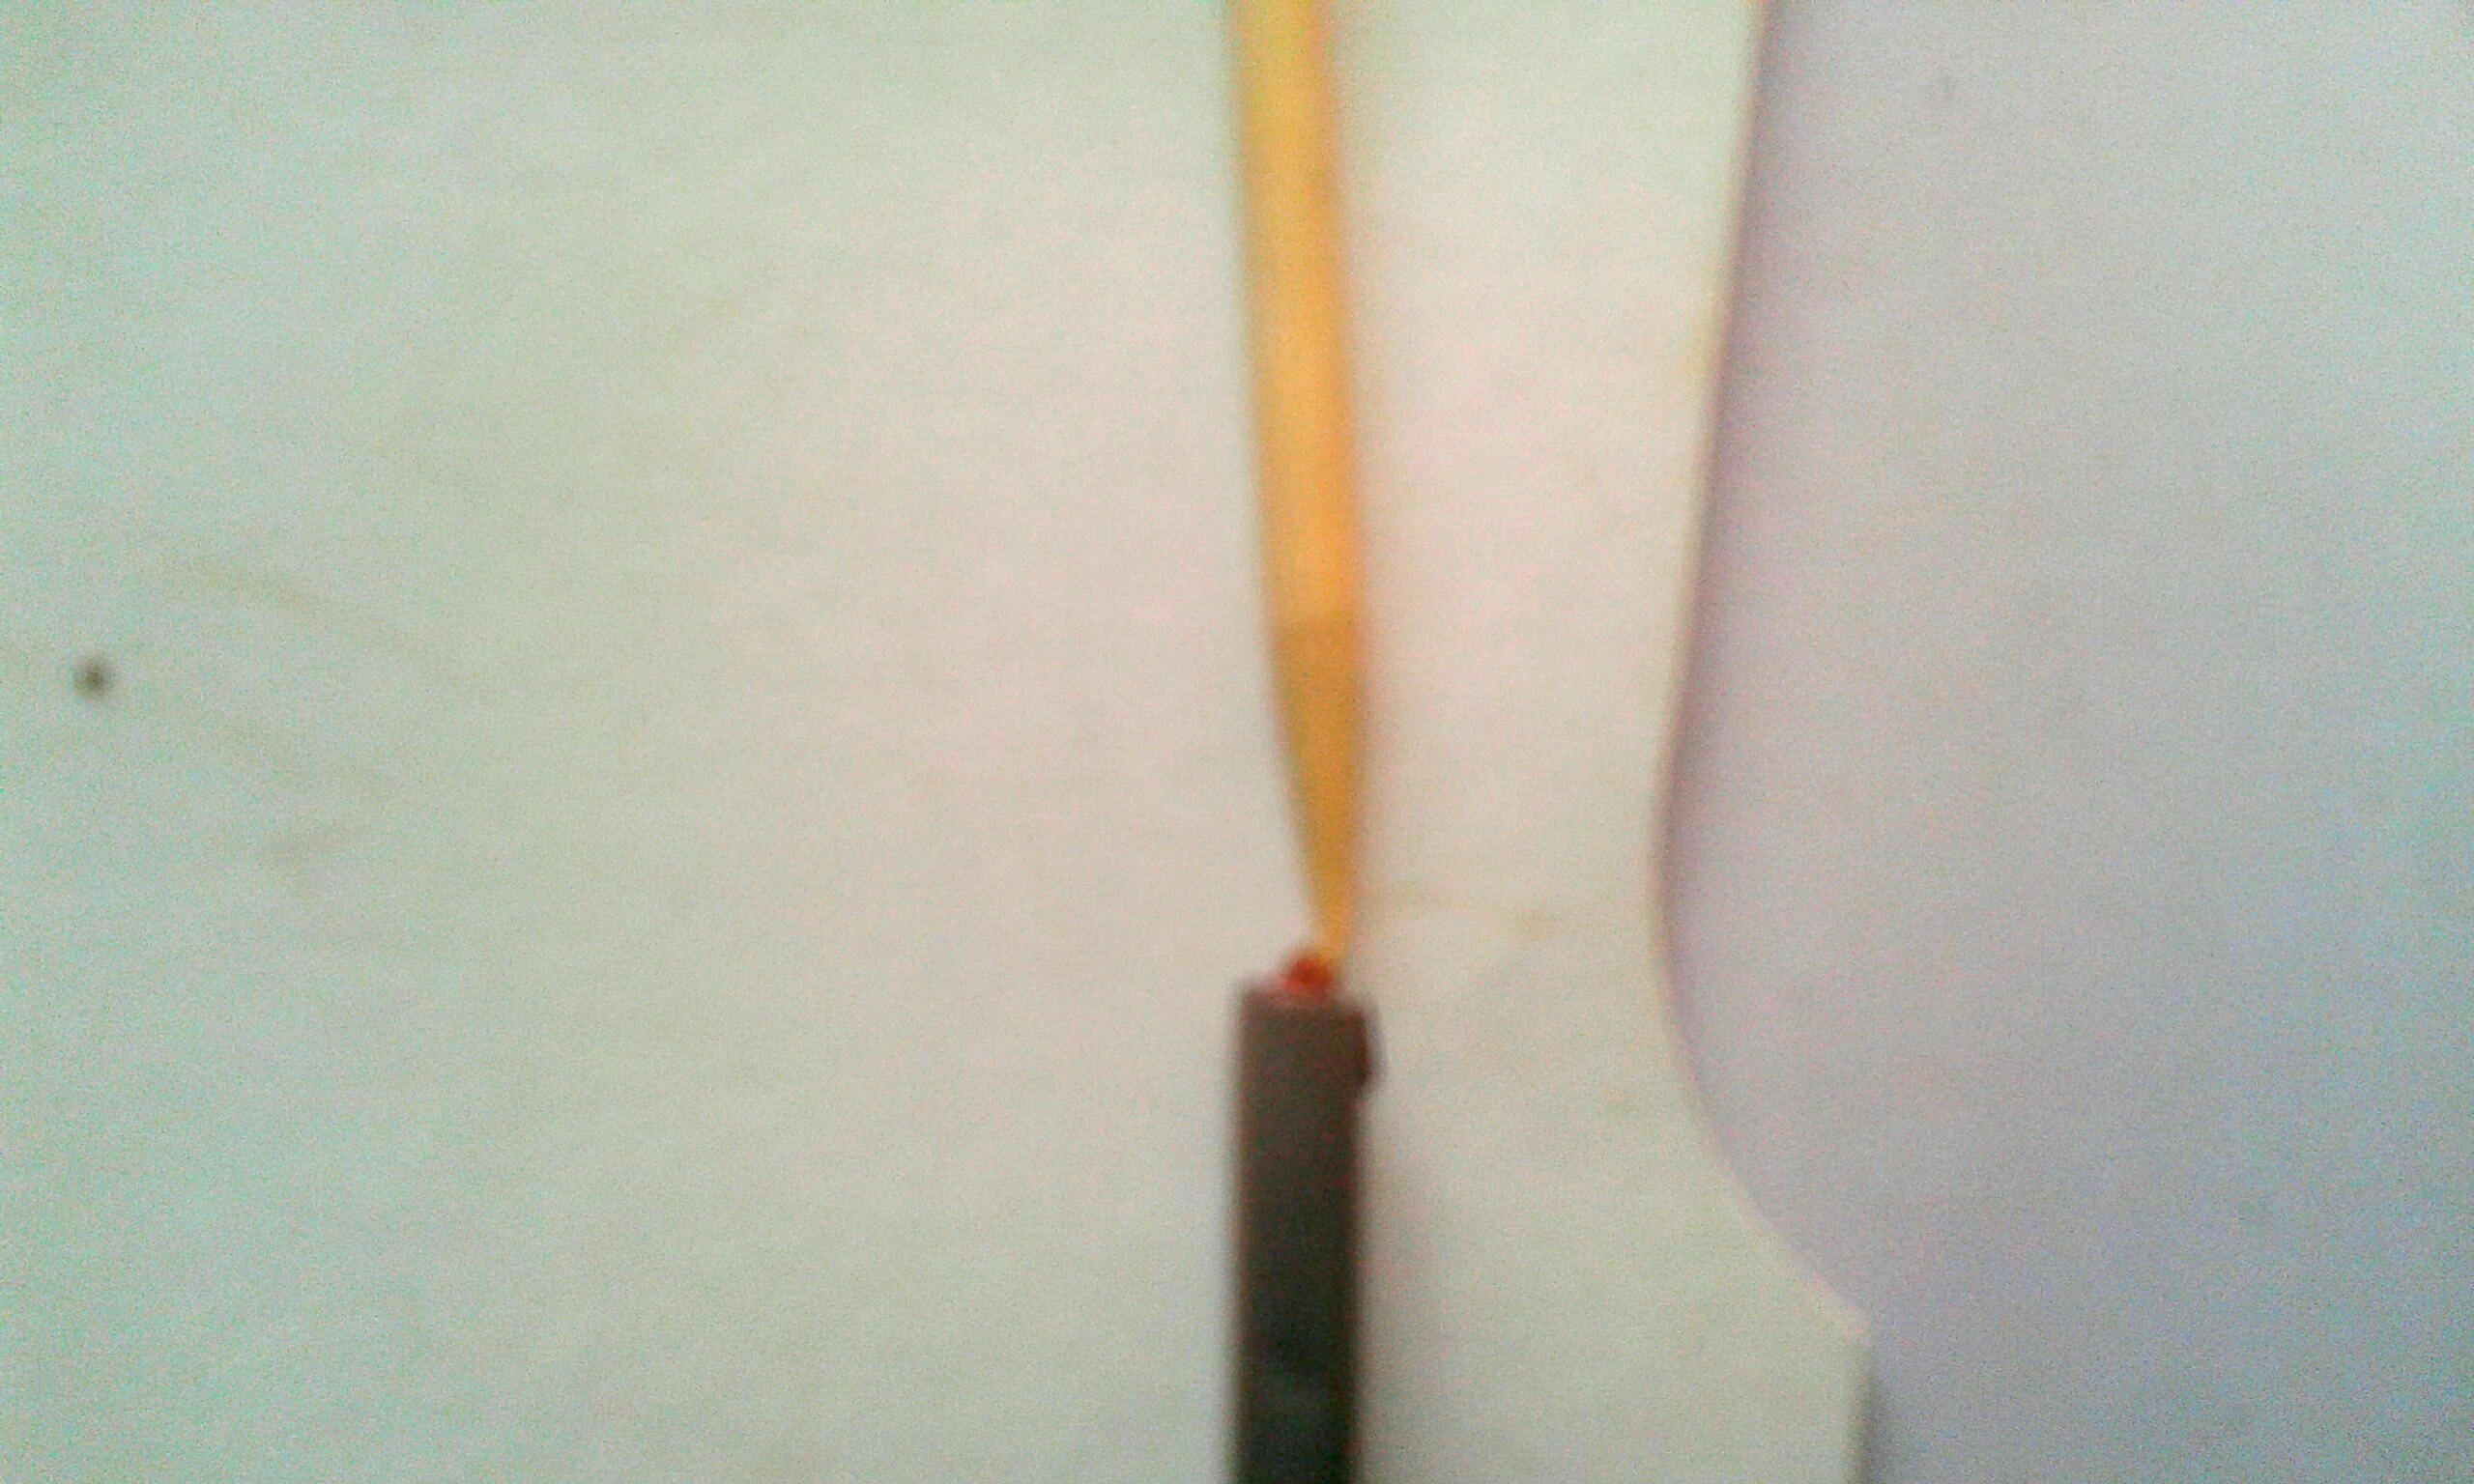 Picture of Push a Match Head Into the Foil Tube